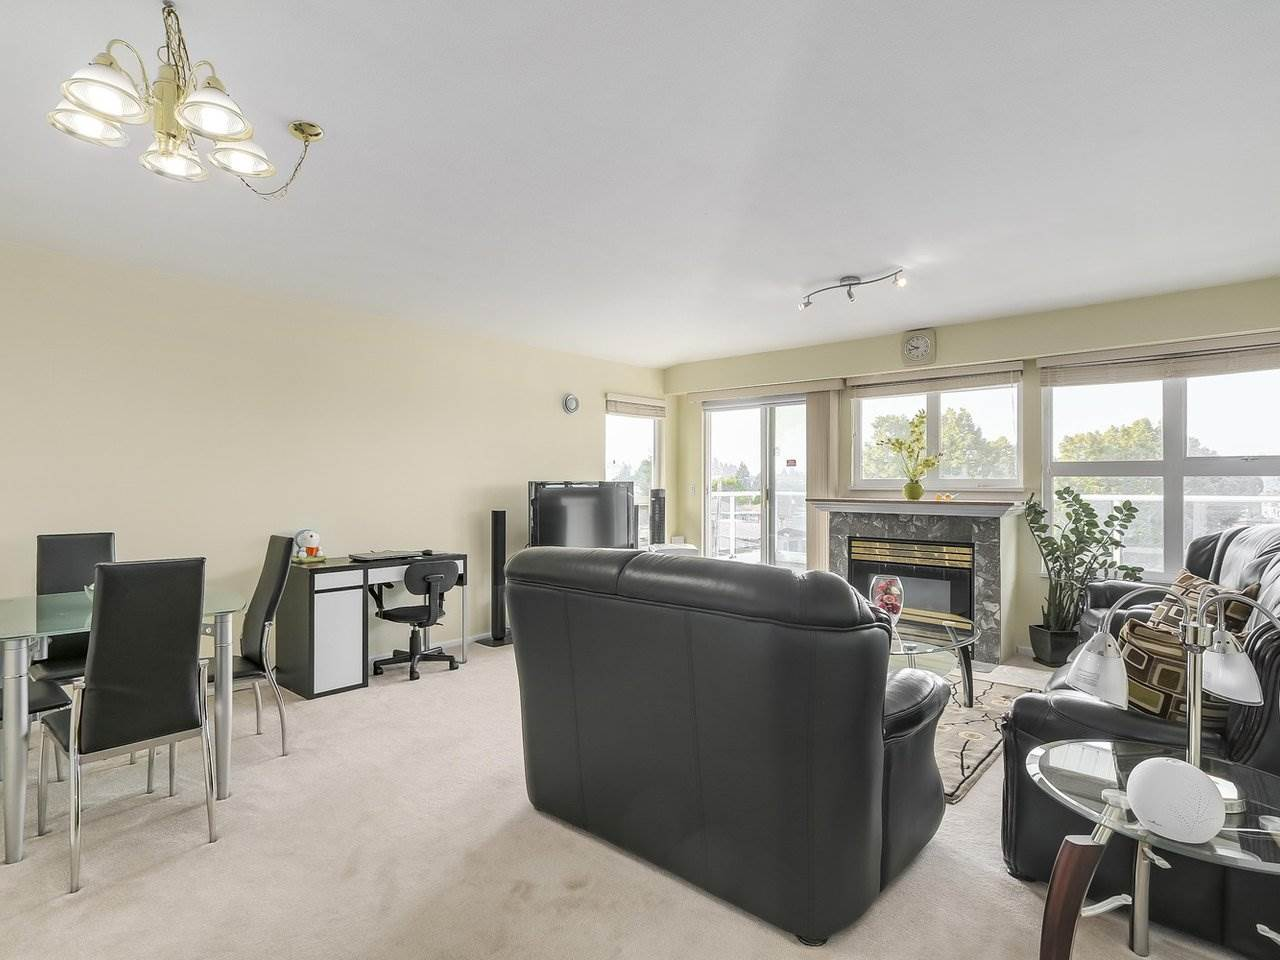 Condo Apartment at 405 2965 HORLEY STREET, Unit 405, Vancouver East, British Columbia. Image 6